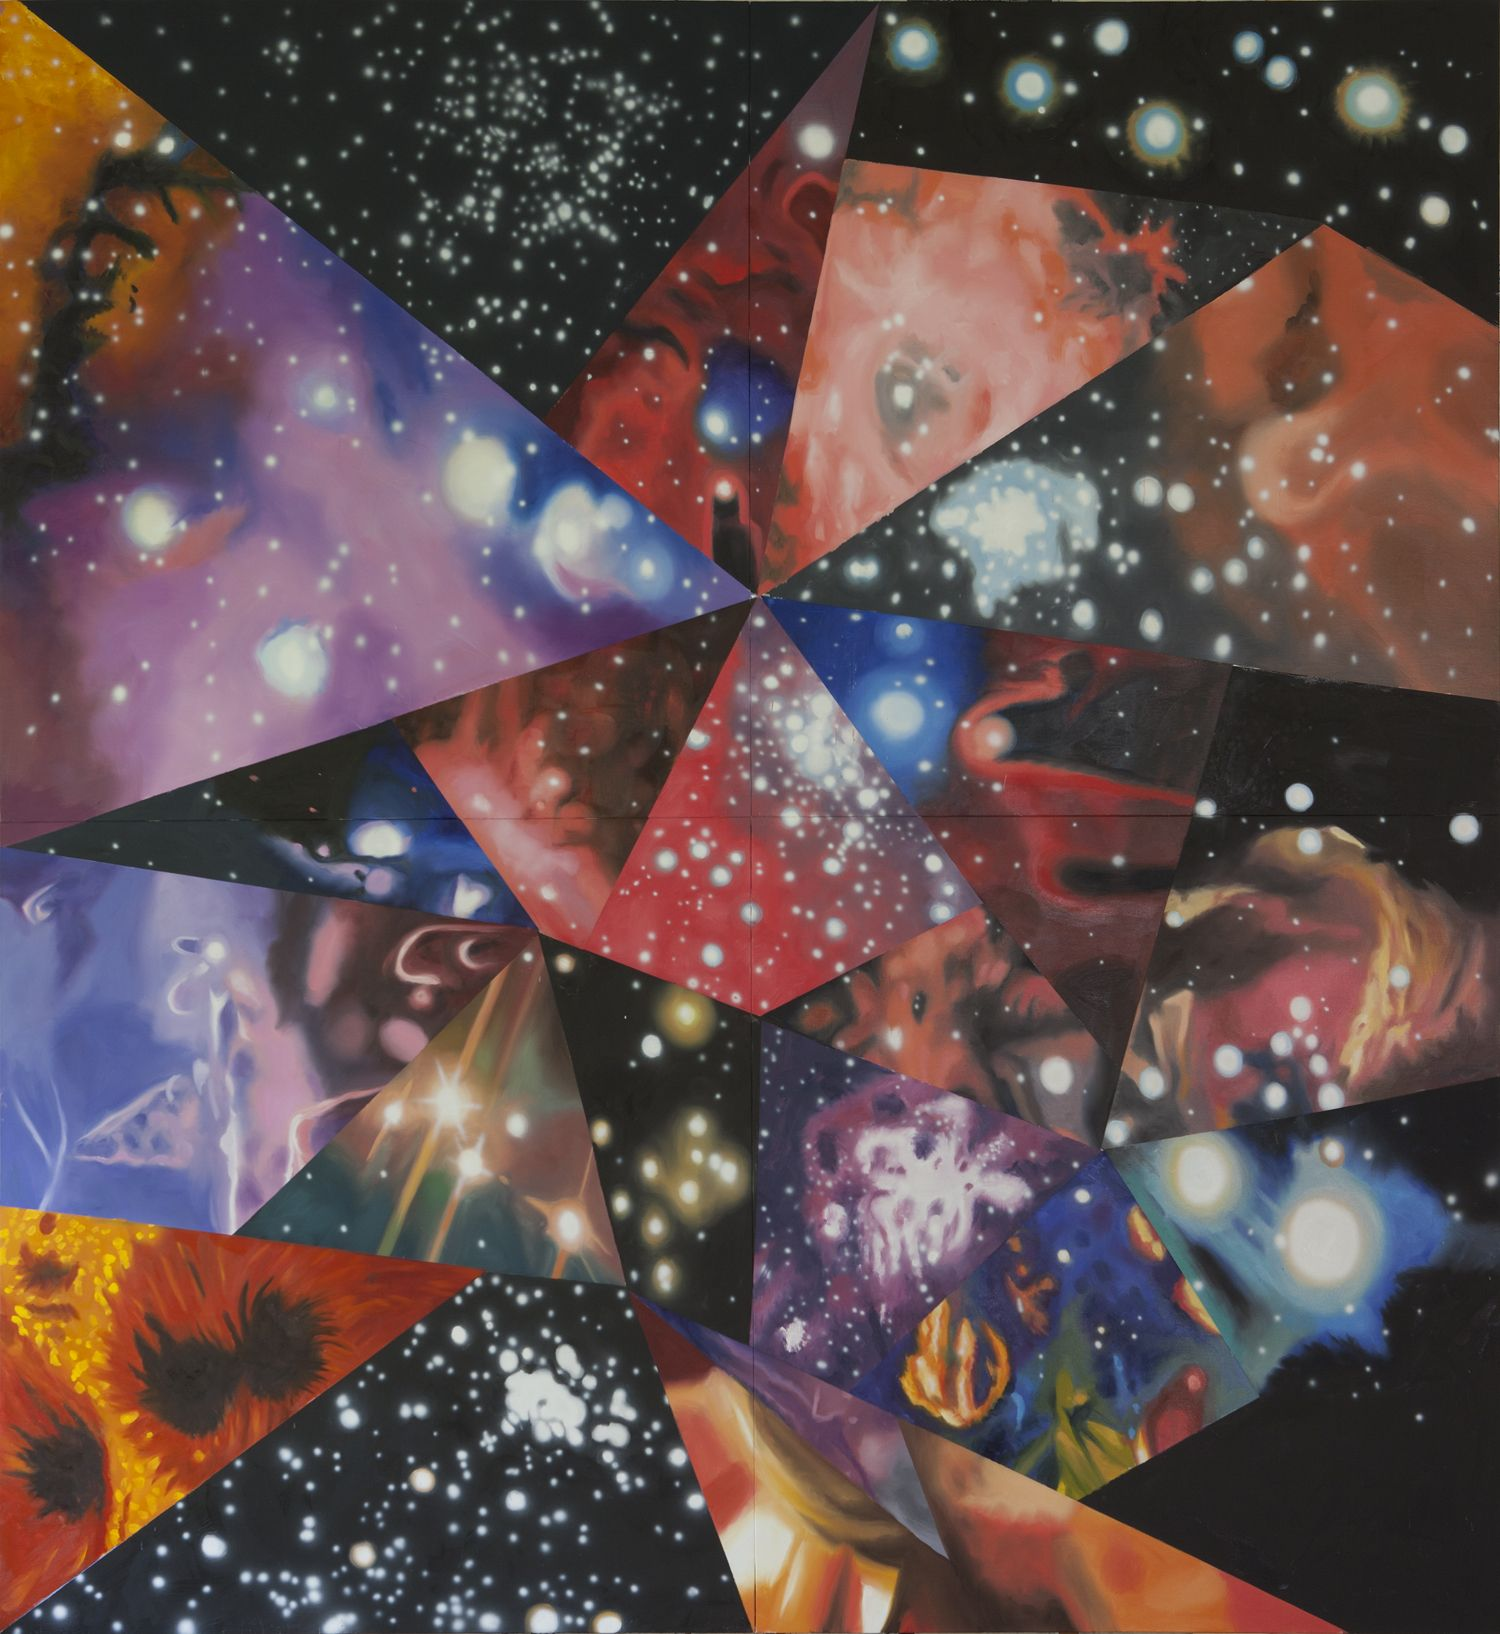 James Rosenquist, Multiverse You Are, I Am